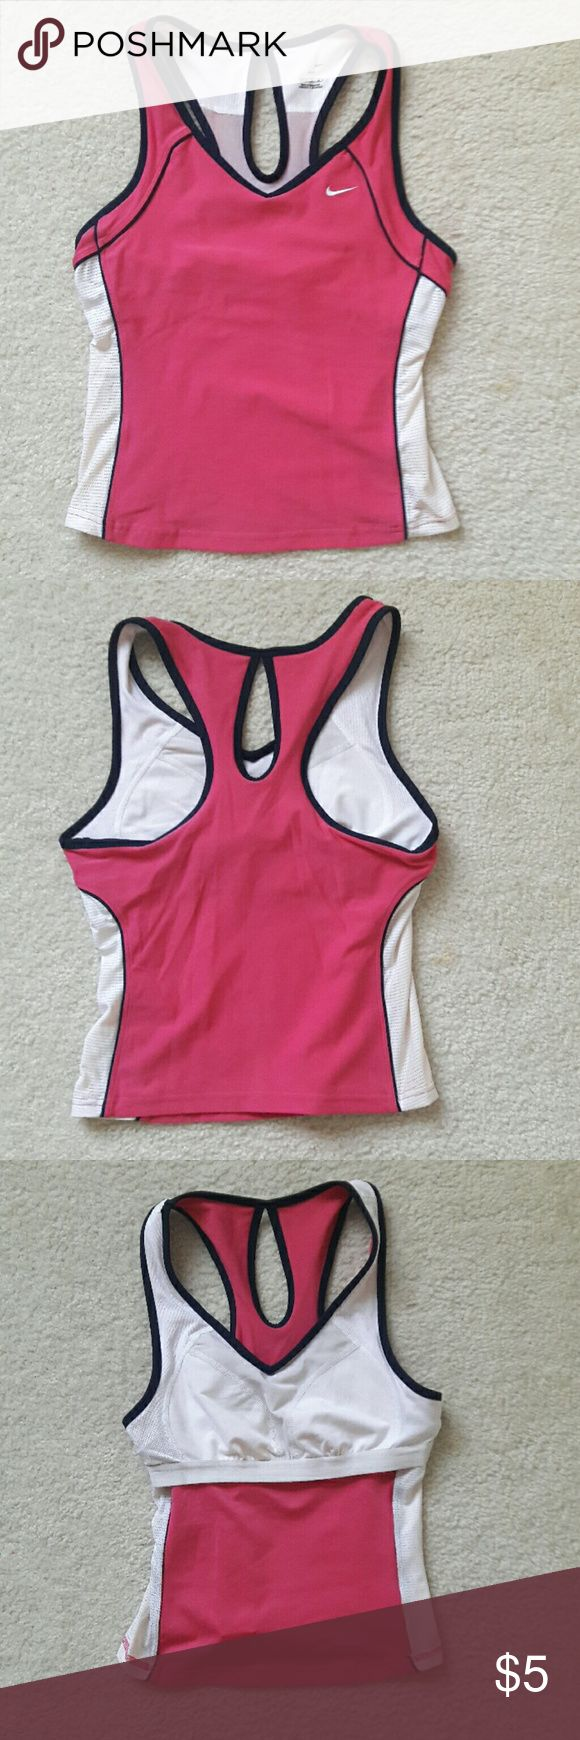 Nike Dri-Fit athletic tank top with build in bra This is almost brand new Nike Dri-Fit athletic tank top with a build in bra. Will fit small and medium ladies. Smoke and pet free home. Will ship immediately. Nike Tops Tank Tops